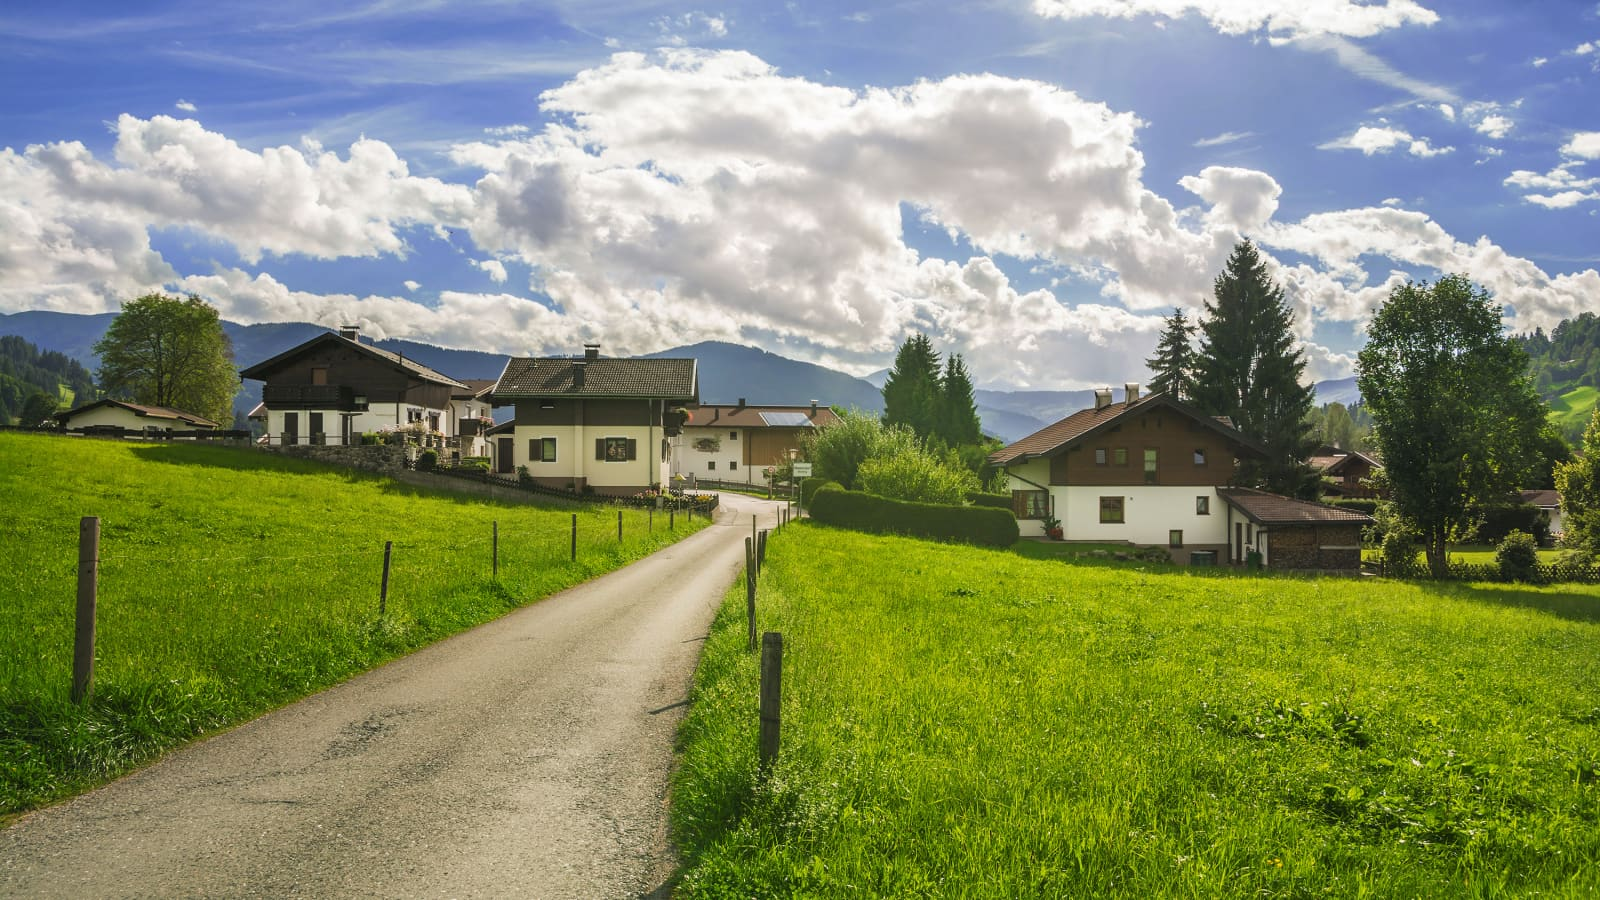 Summer Holidays in Westendorf, Austria - Topflight ie